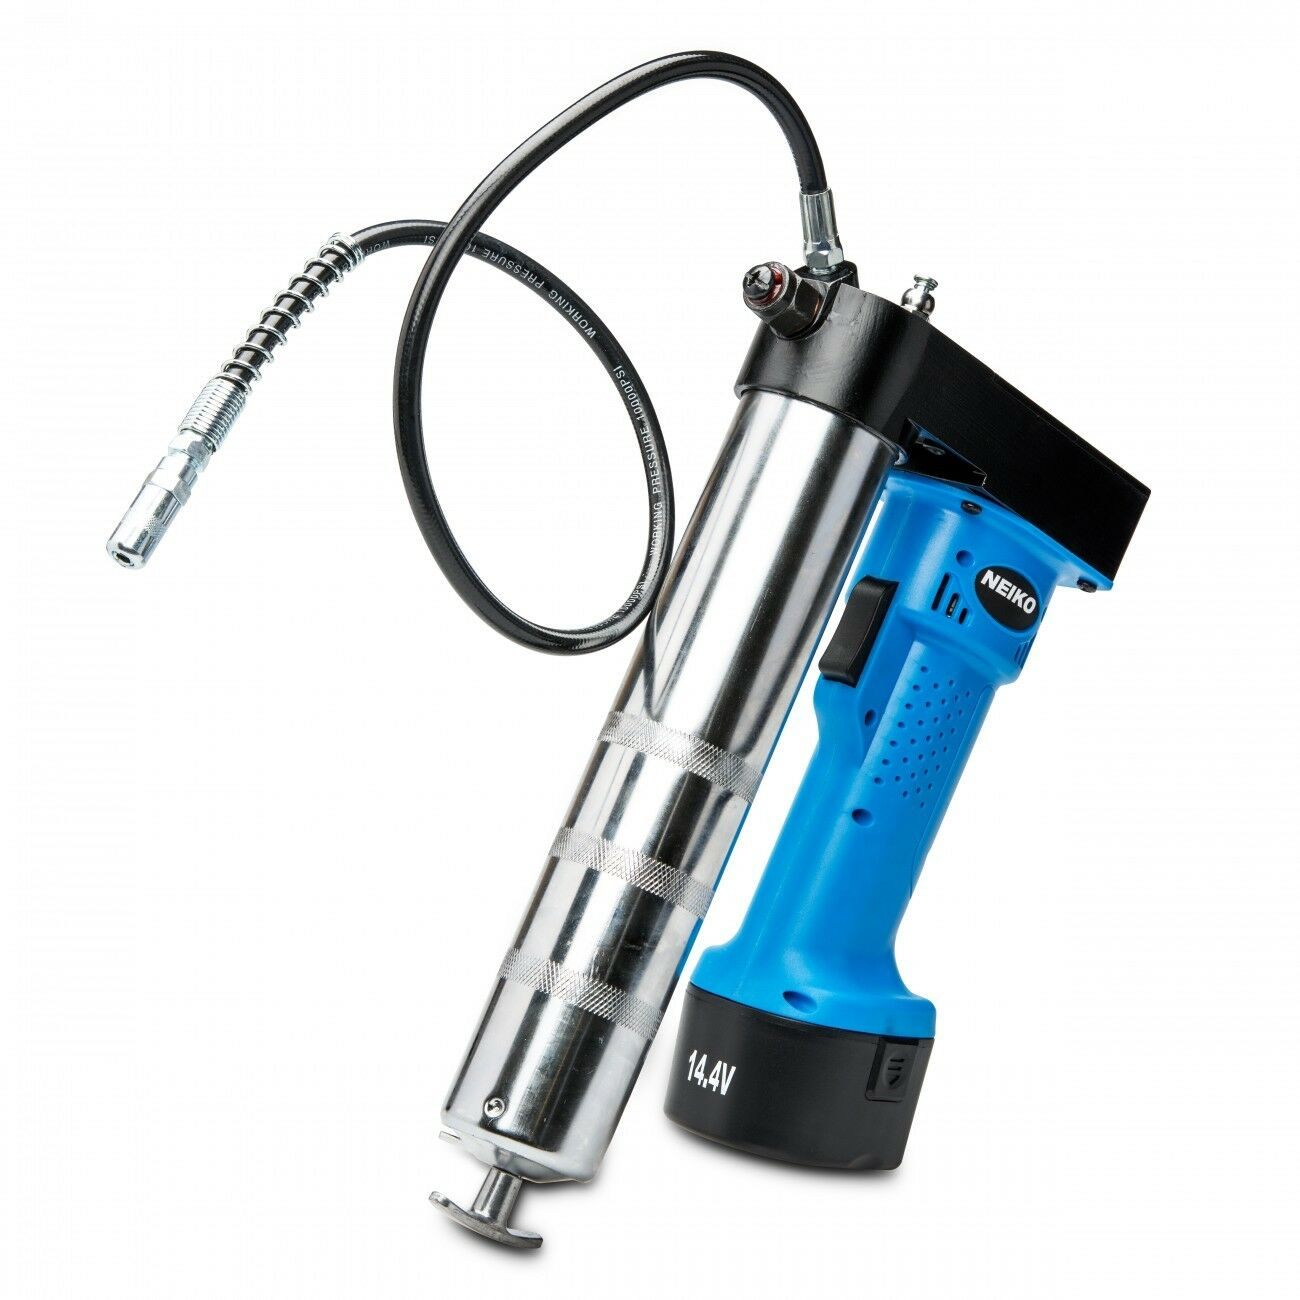 Grease Gun Cordless Pro 14.4 V Rechargeable lithium-ion Battery Li-ion W Case